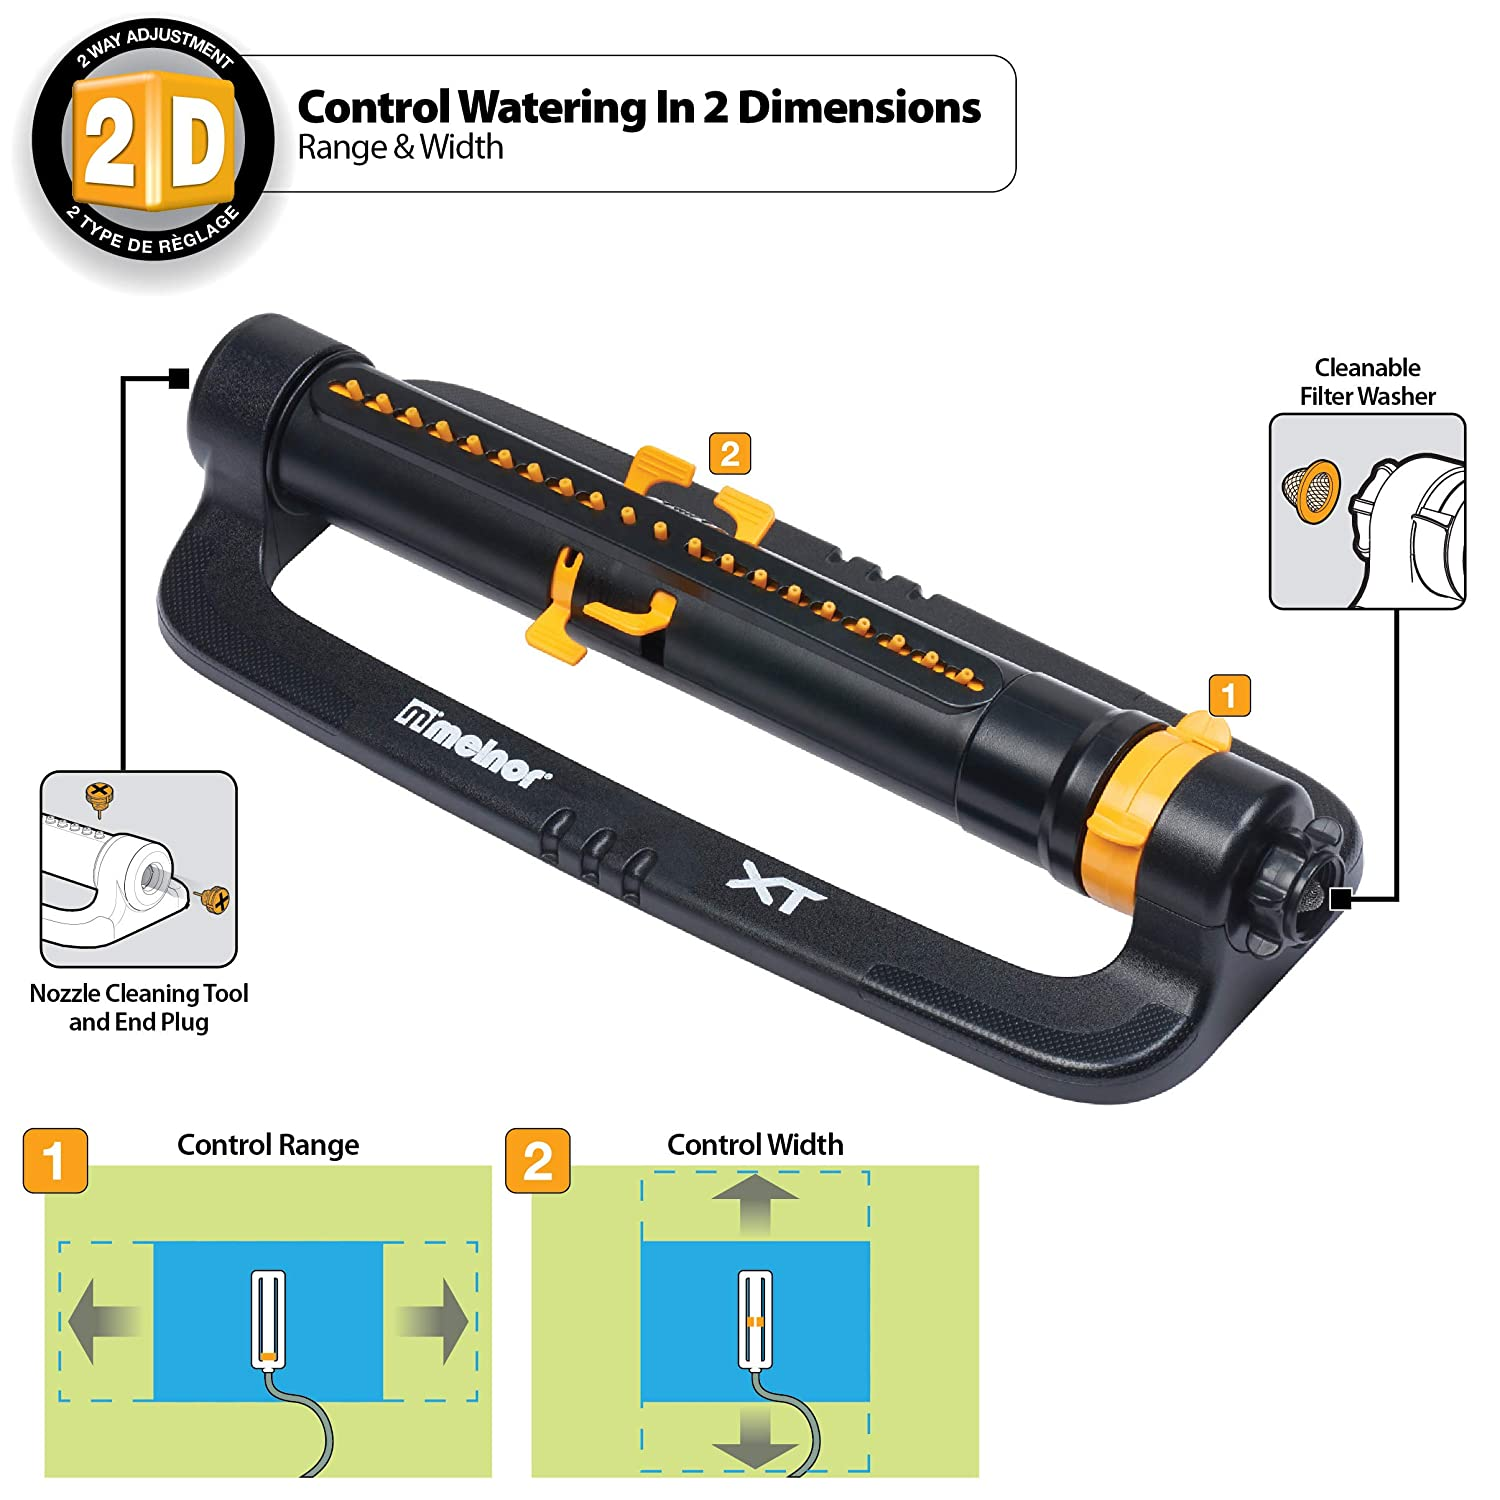 Melnor XT Turbo Oscillating Sprinkler with TwinTouch Width Control /& Flow Control waters up to 4,200 sq.ft.